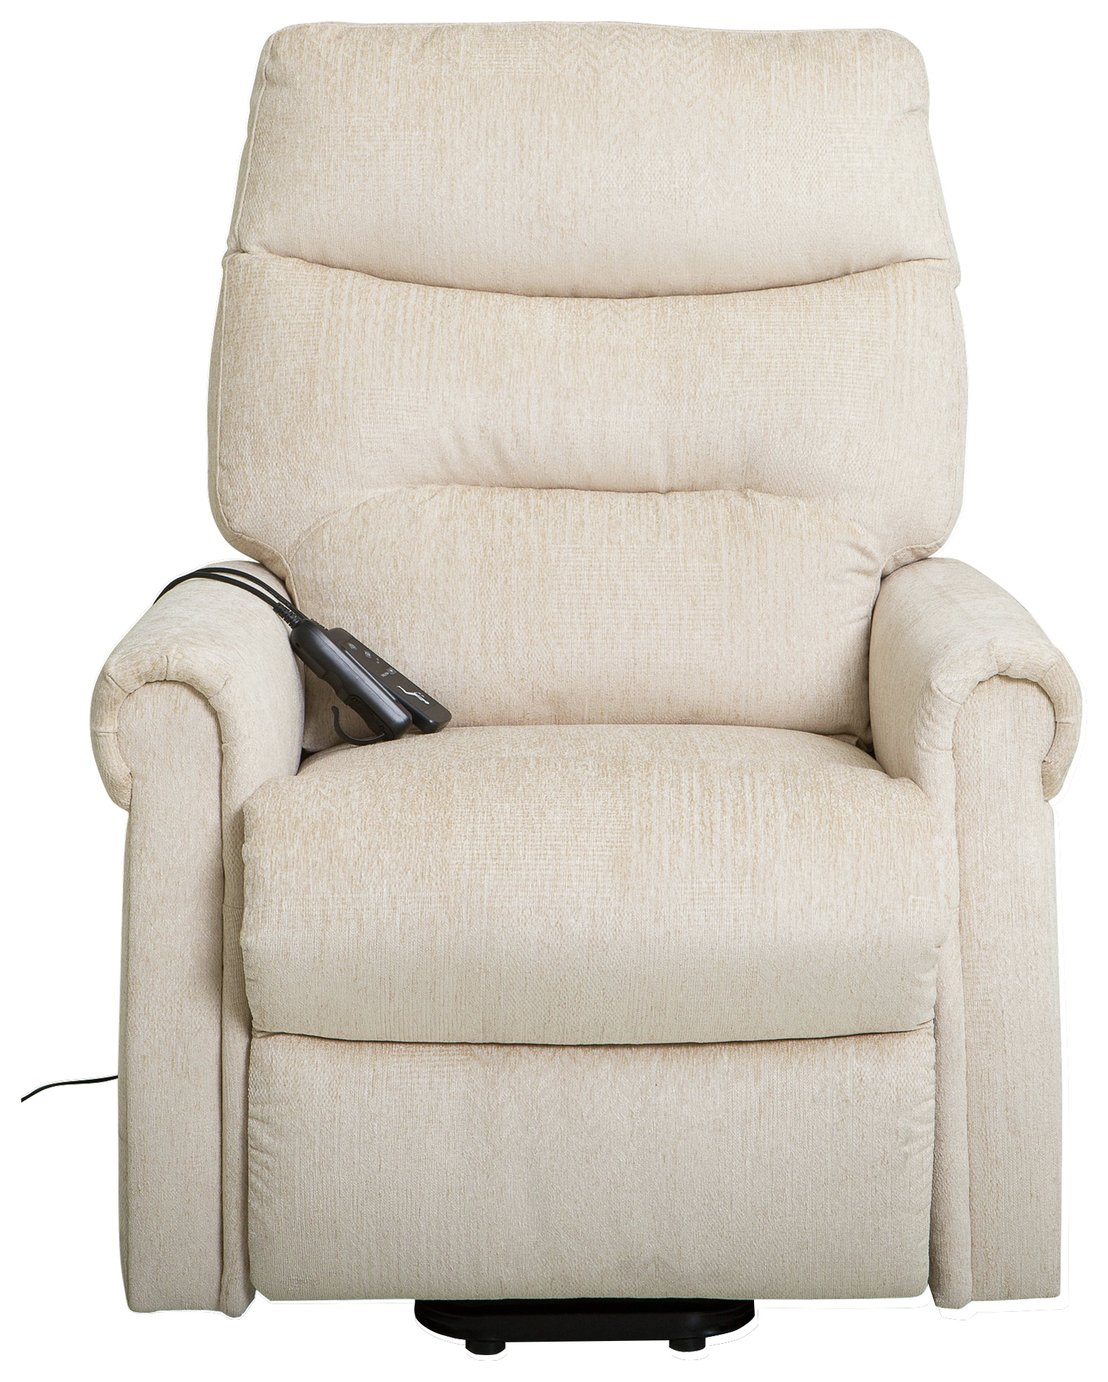 Clarke Riser Recliner Heated Chair - Biscuit